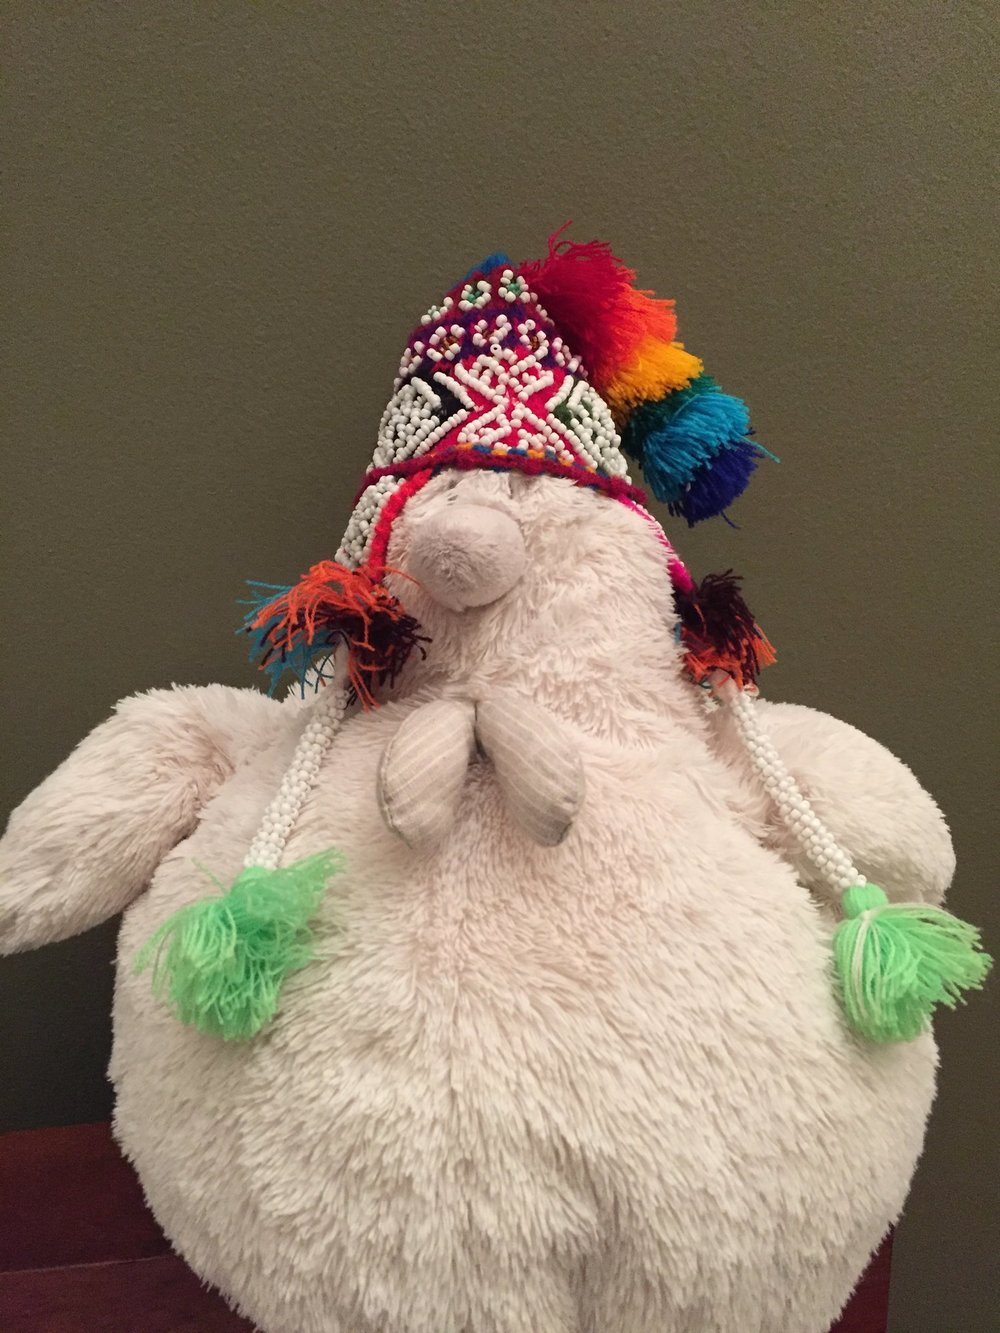 My friend, Chicken, who I brought as a travel companion and the smallest and most expensive hat I've ever purchased.